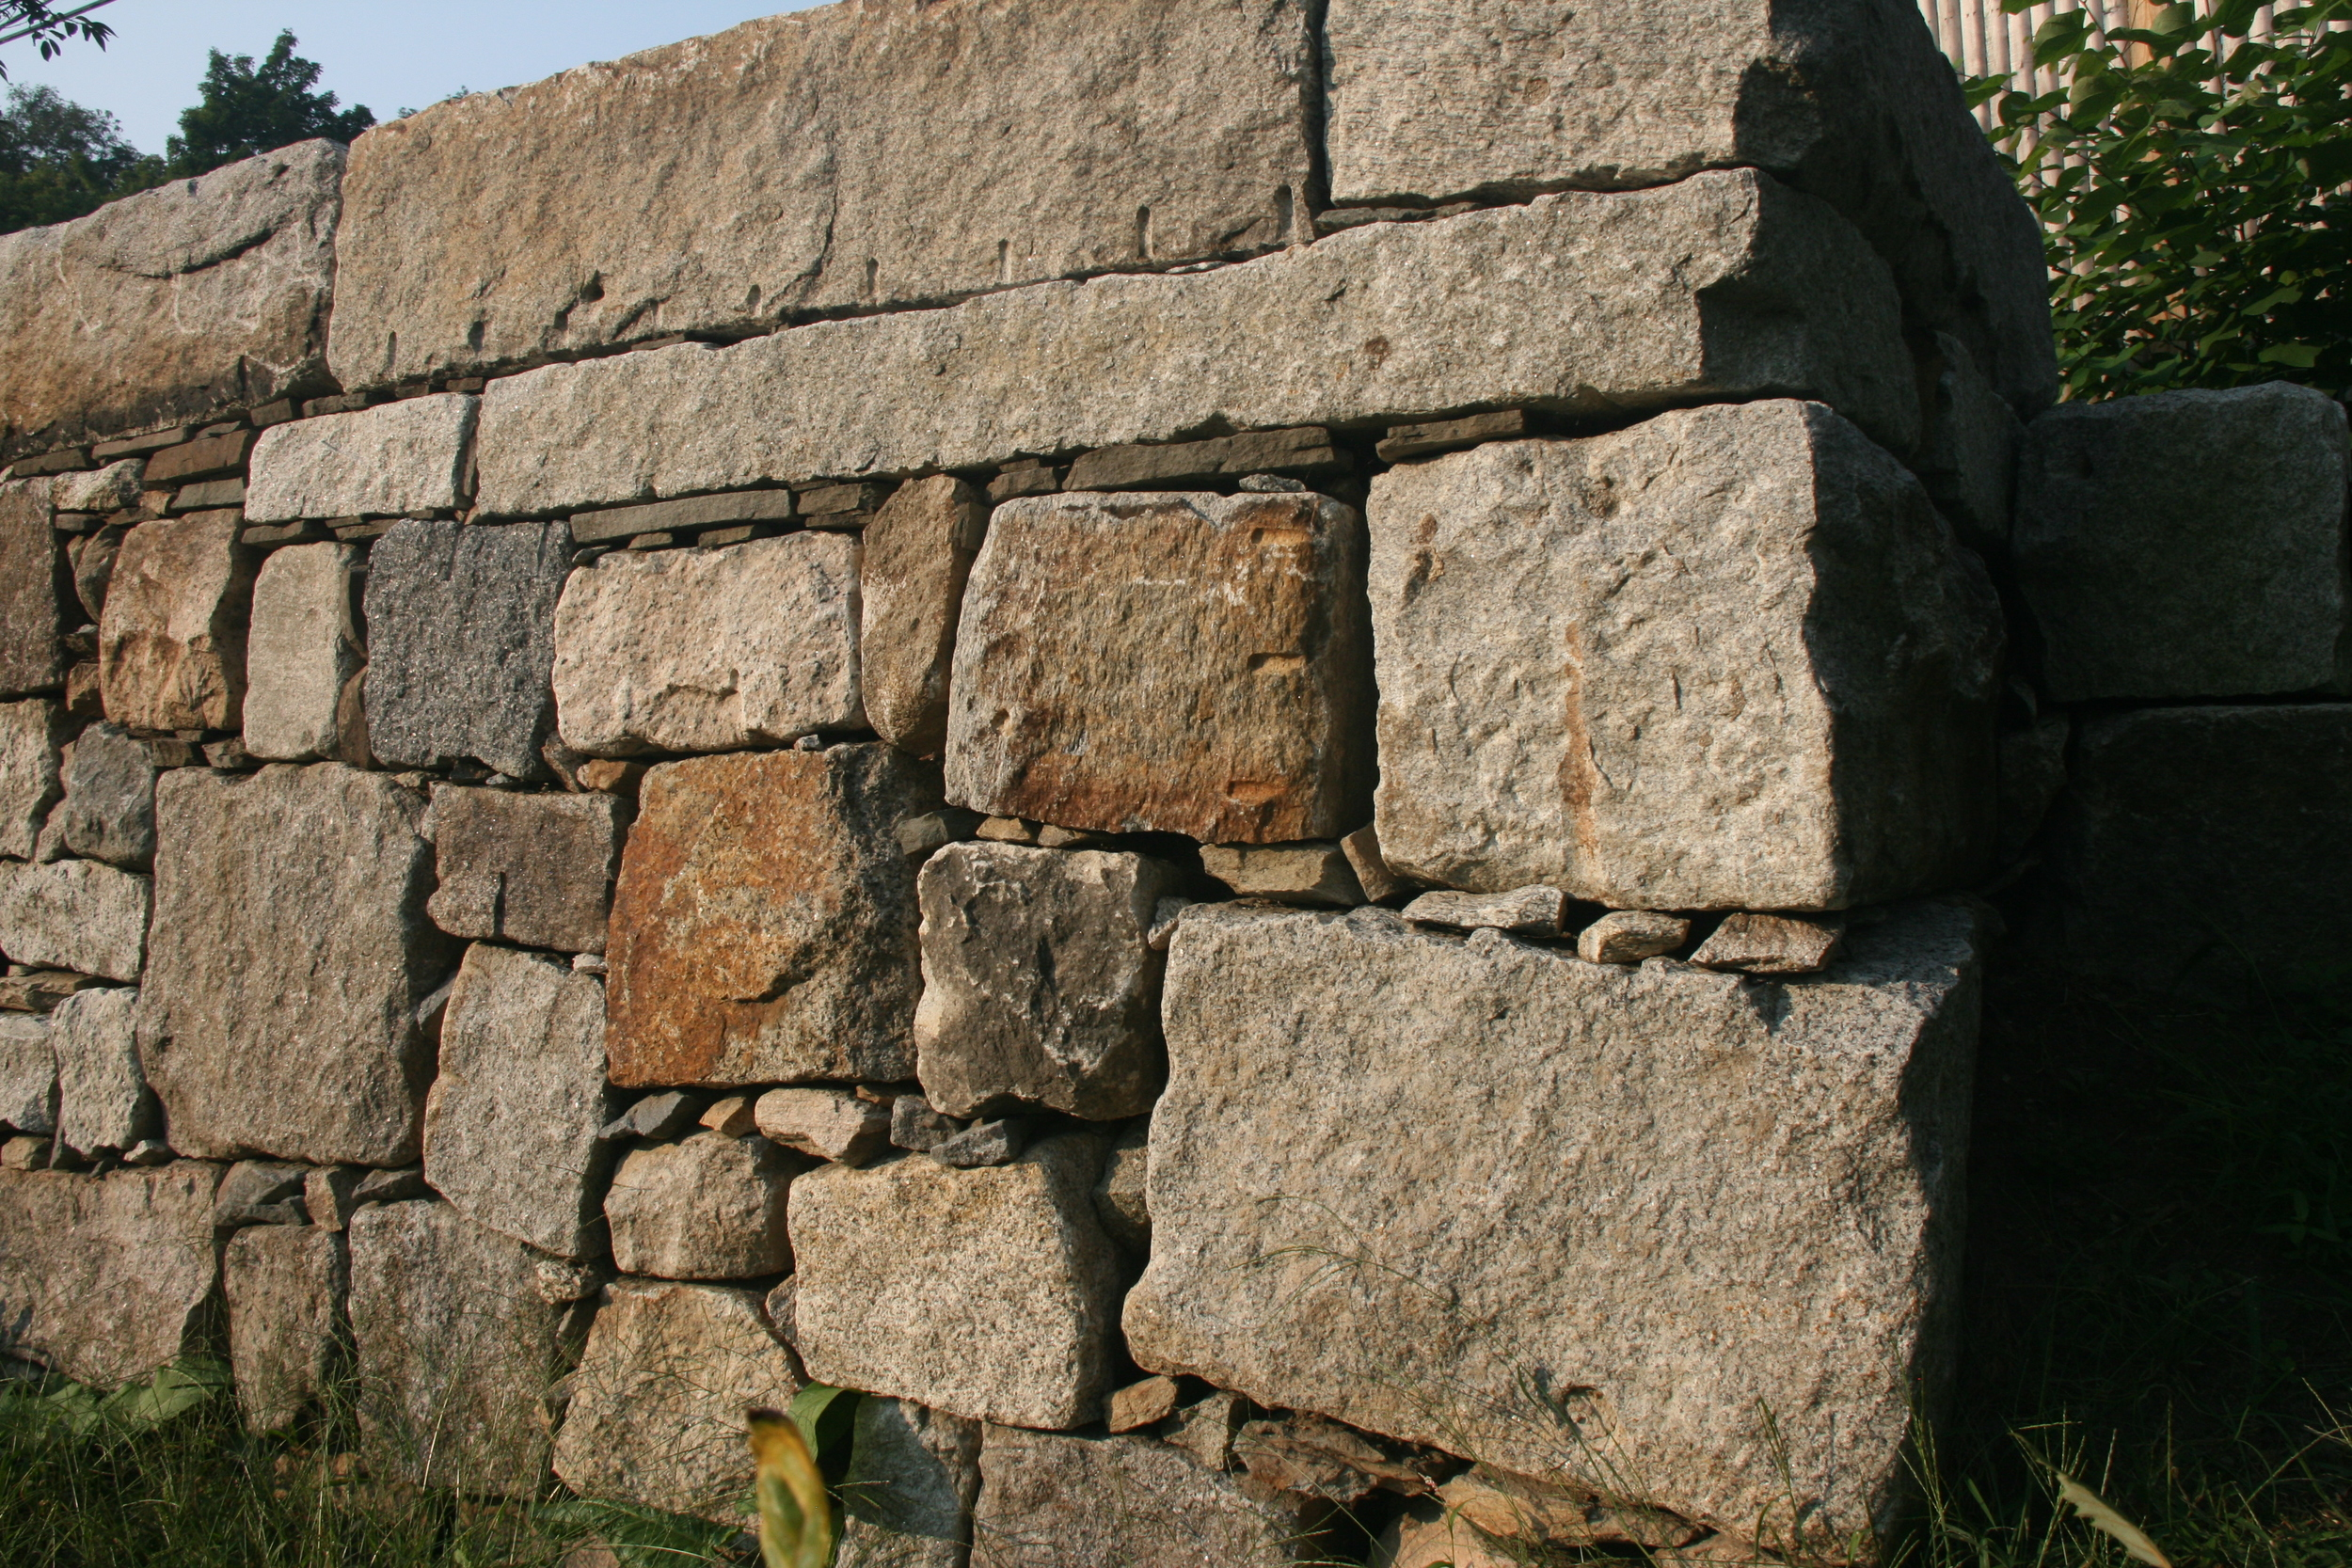 Sideview of Granite Retaining Wall